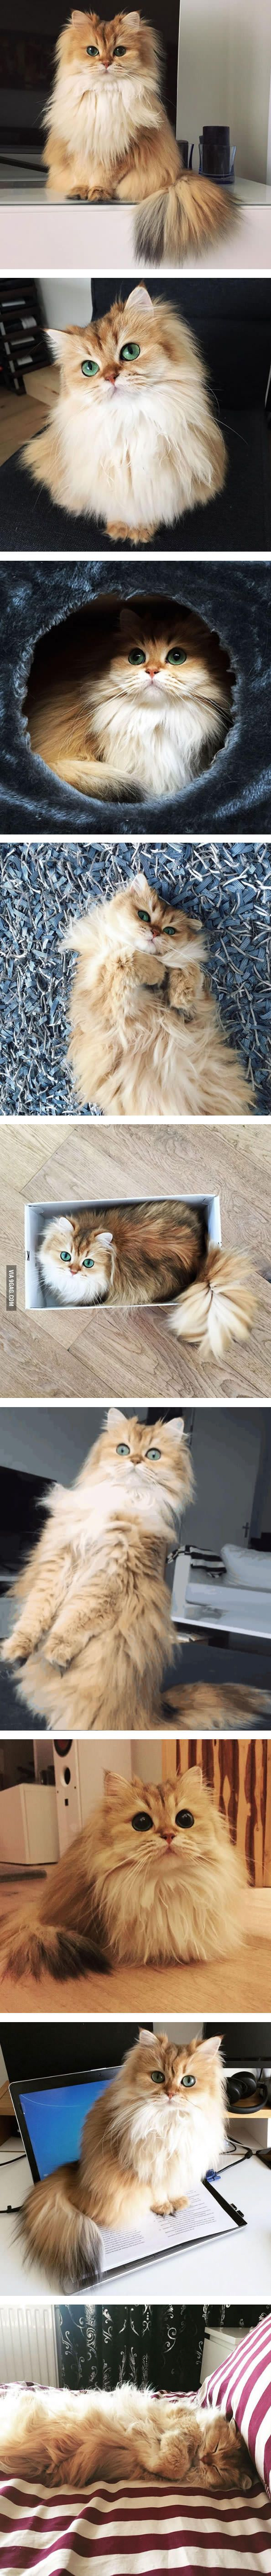 This Is Smoothie, The World's Most Photogenic Cat - 9GAG